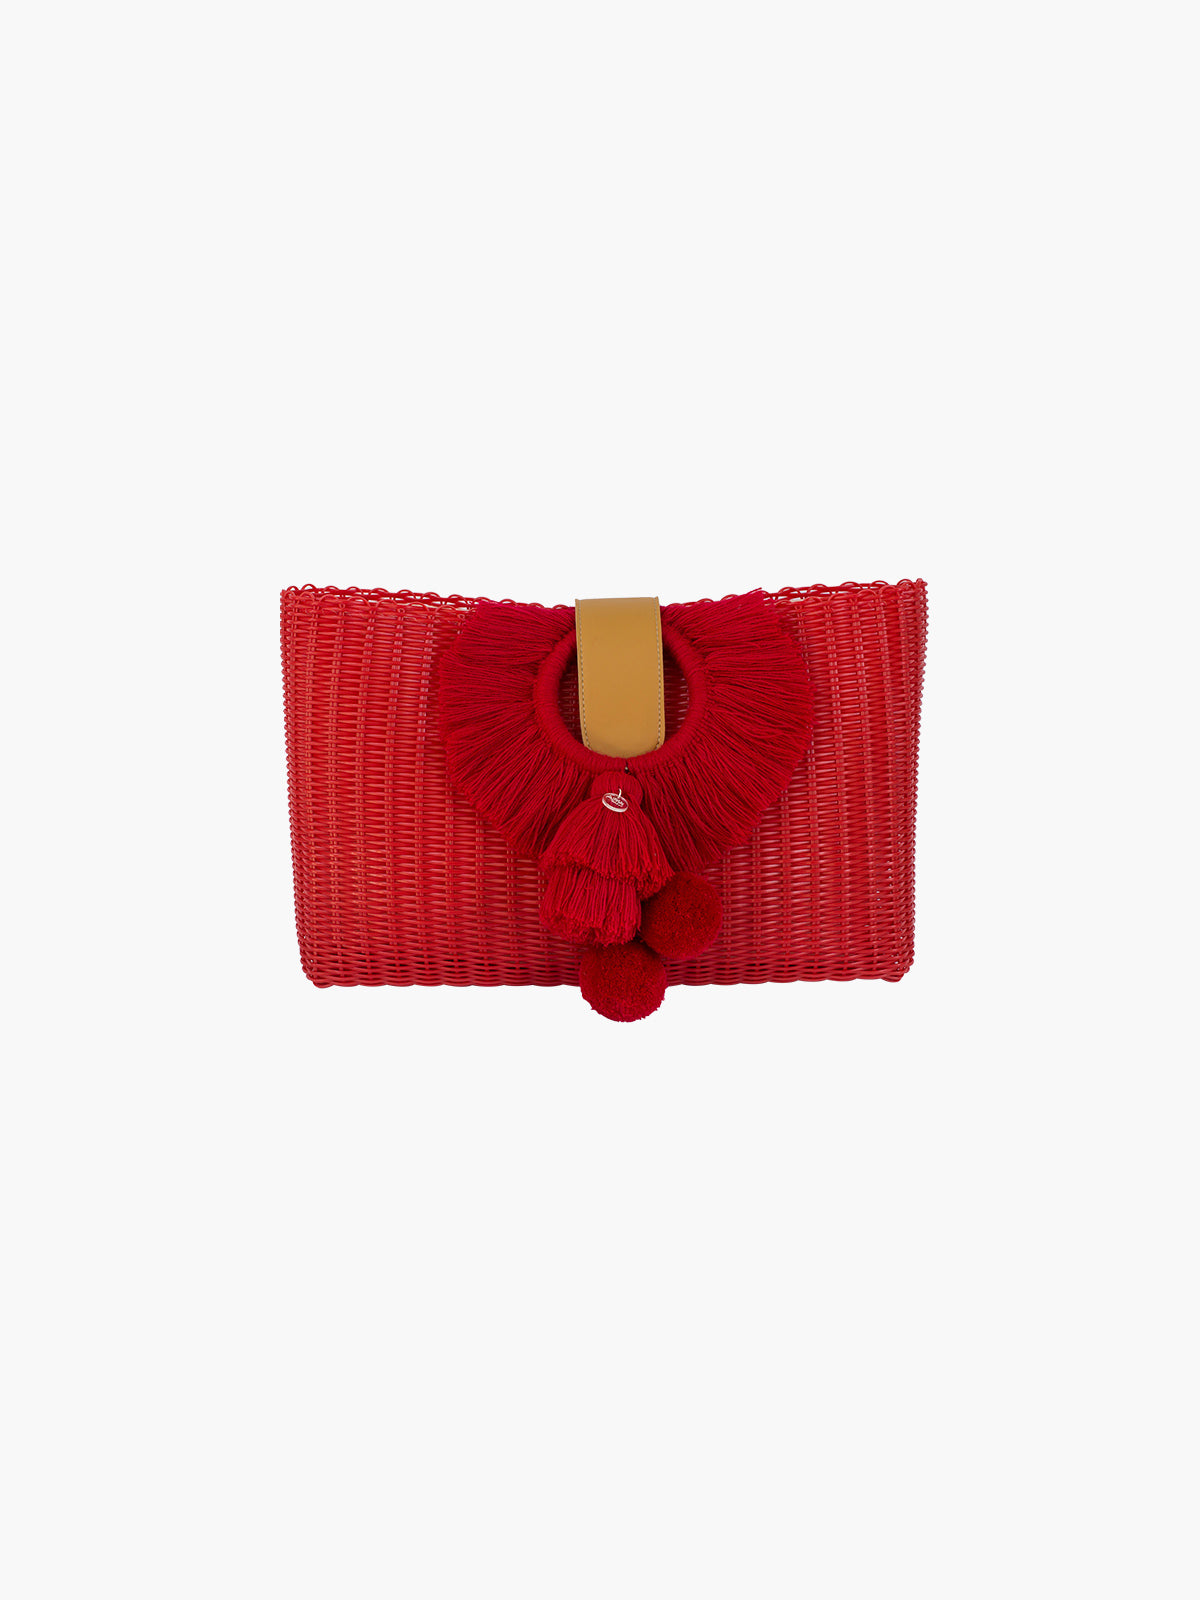 Tonati Oversized Clutch | Red Tonati Oversized Clutch | Red